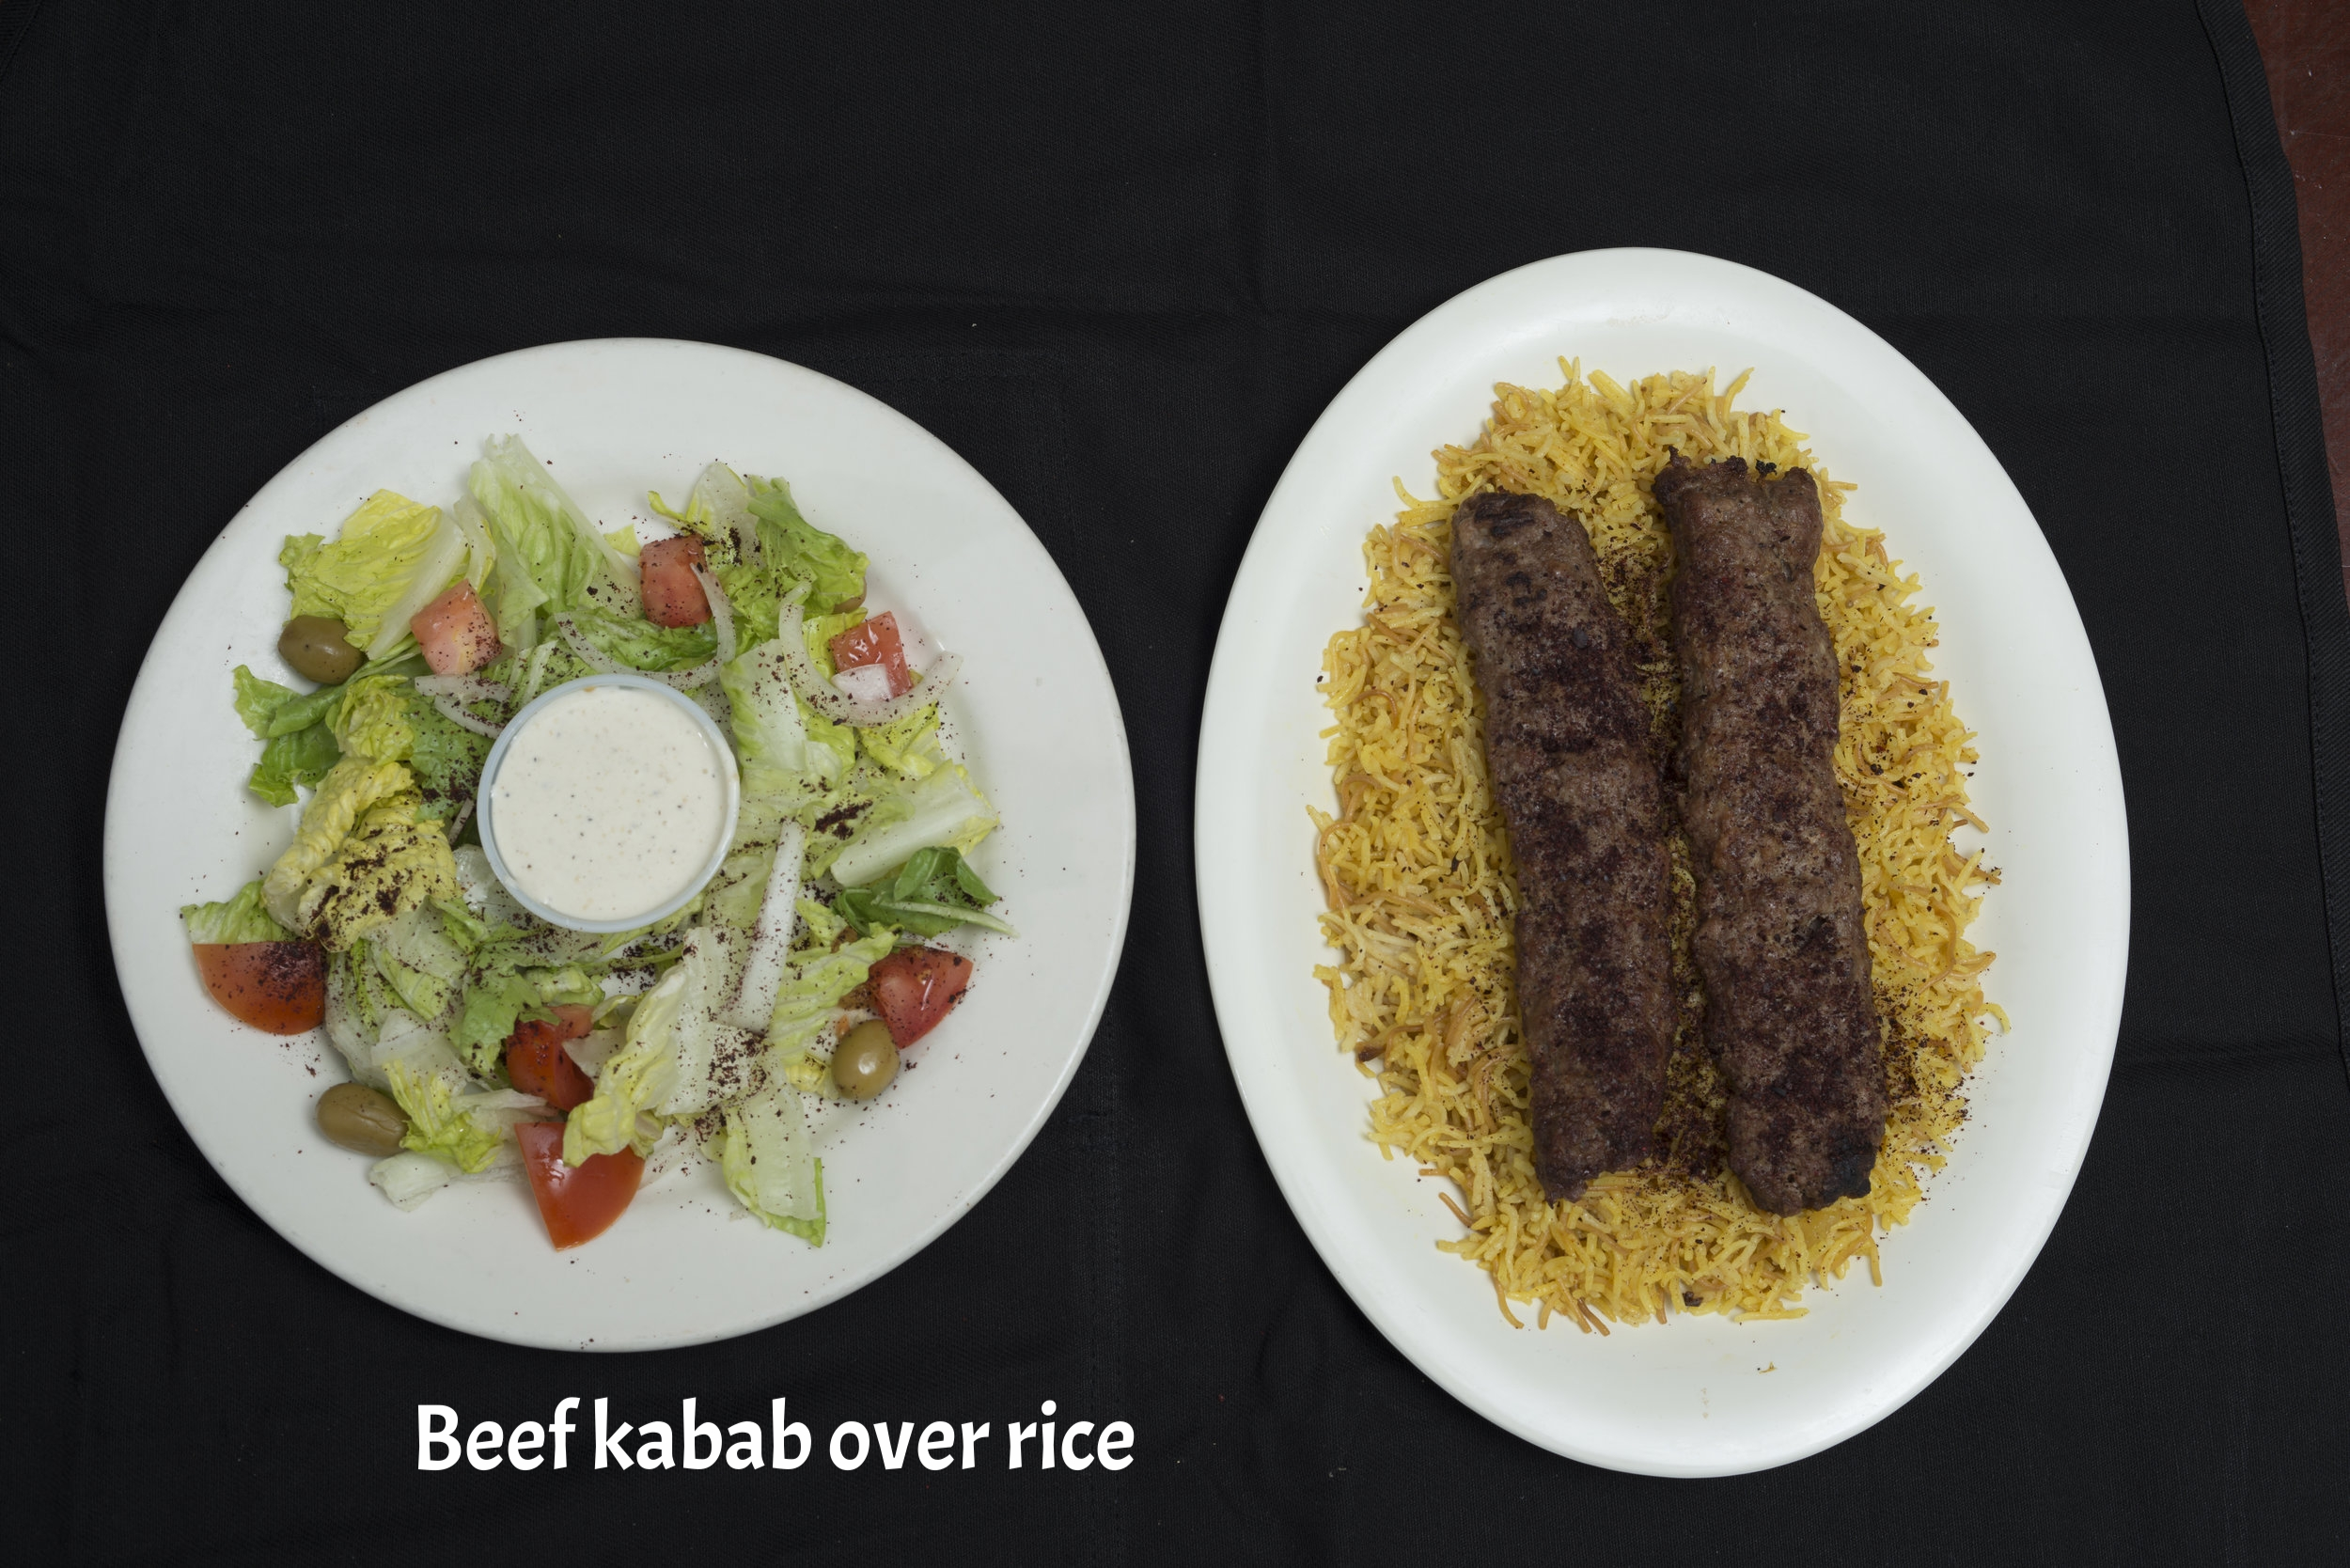 BEEF KABAB OVER RICE